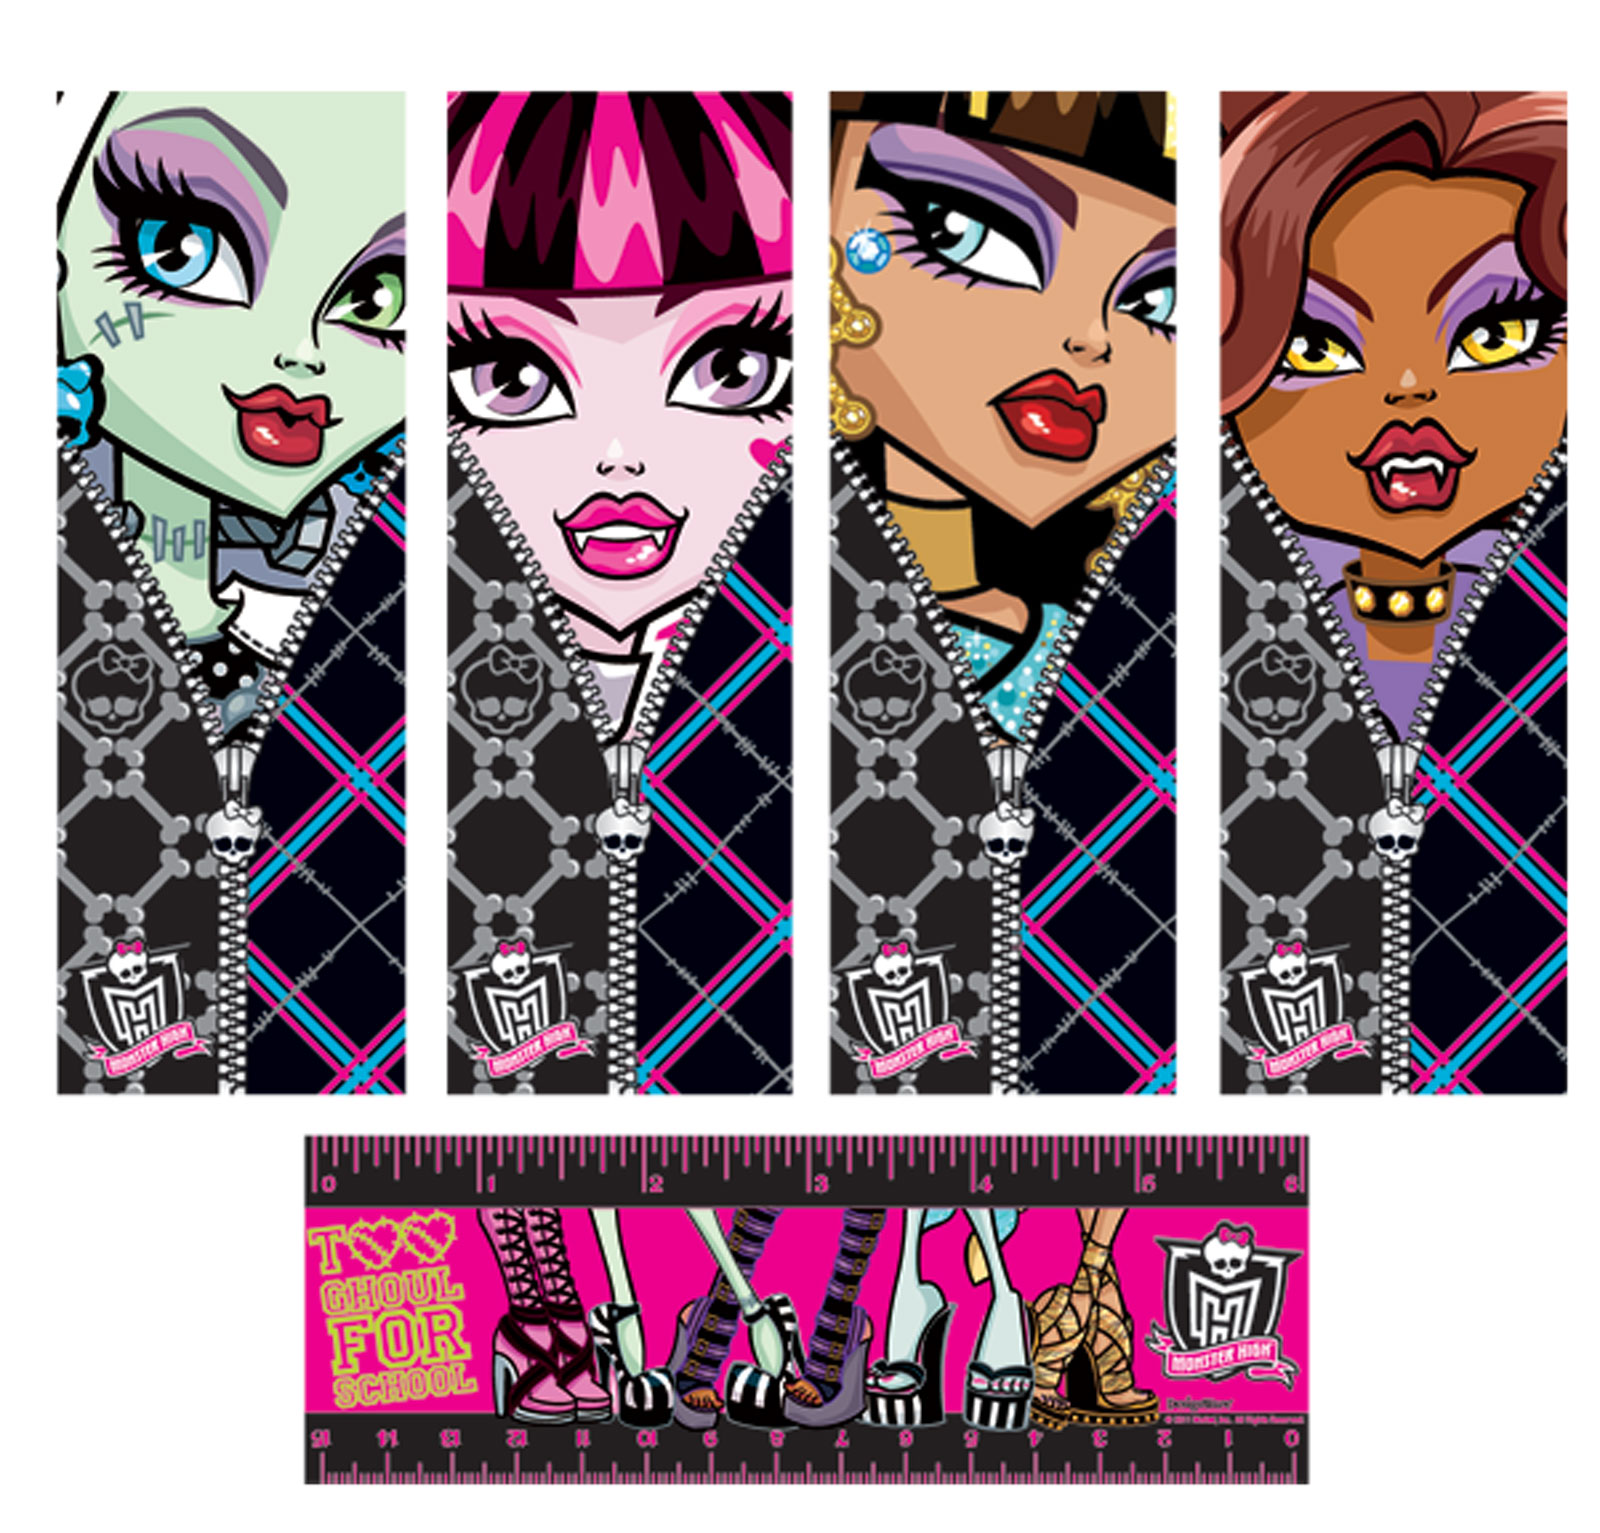 Monster High Birthday Party Invitations is great invitation ideas